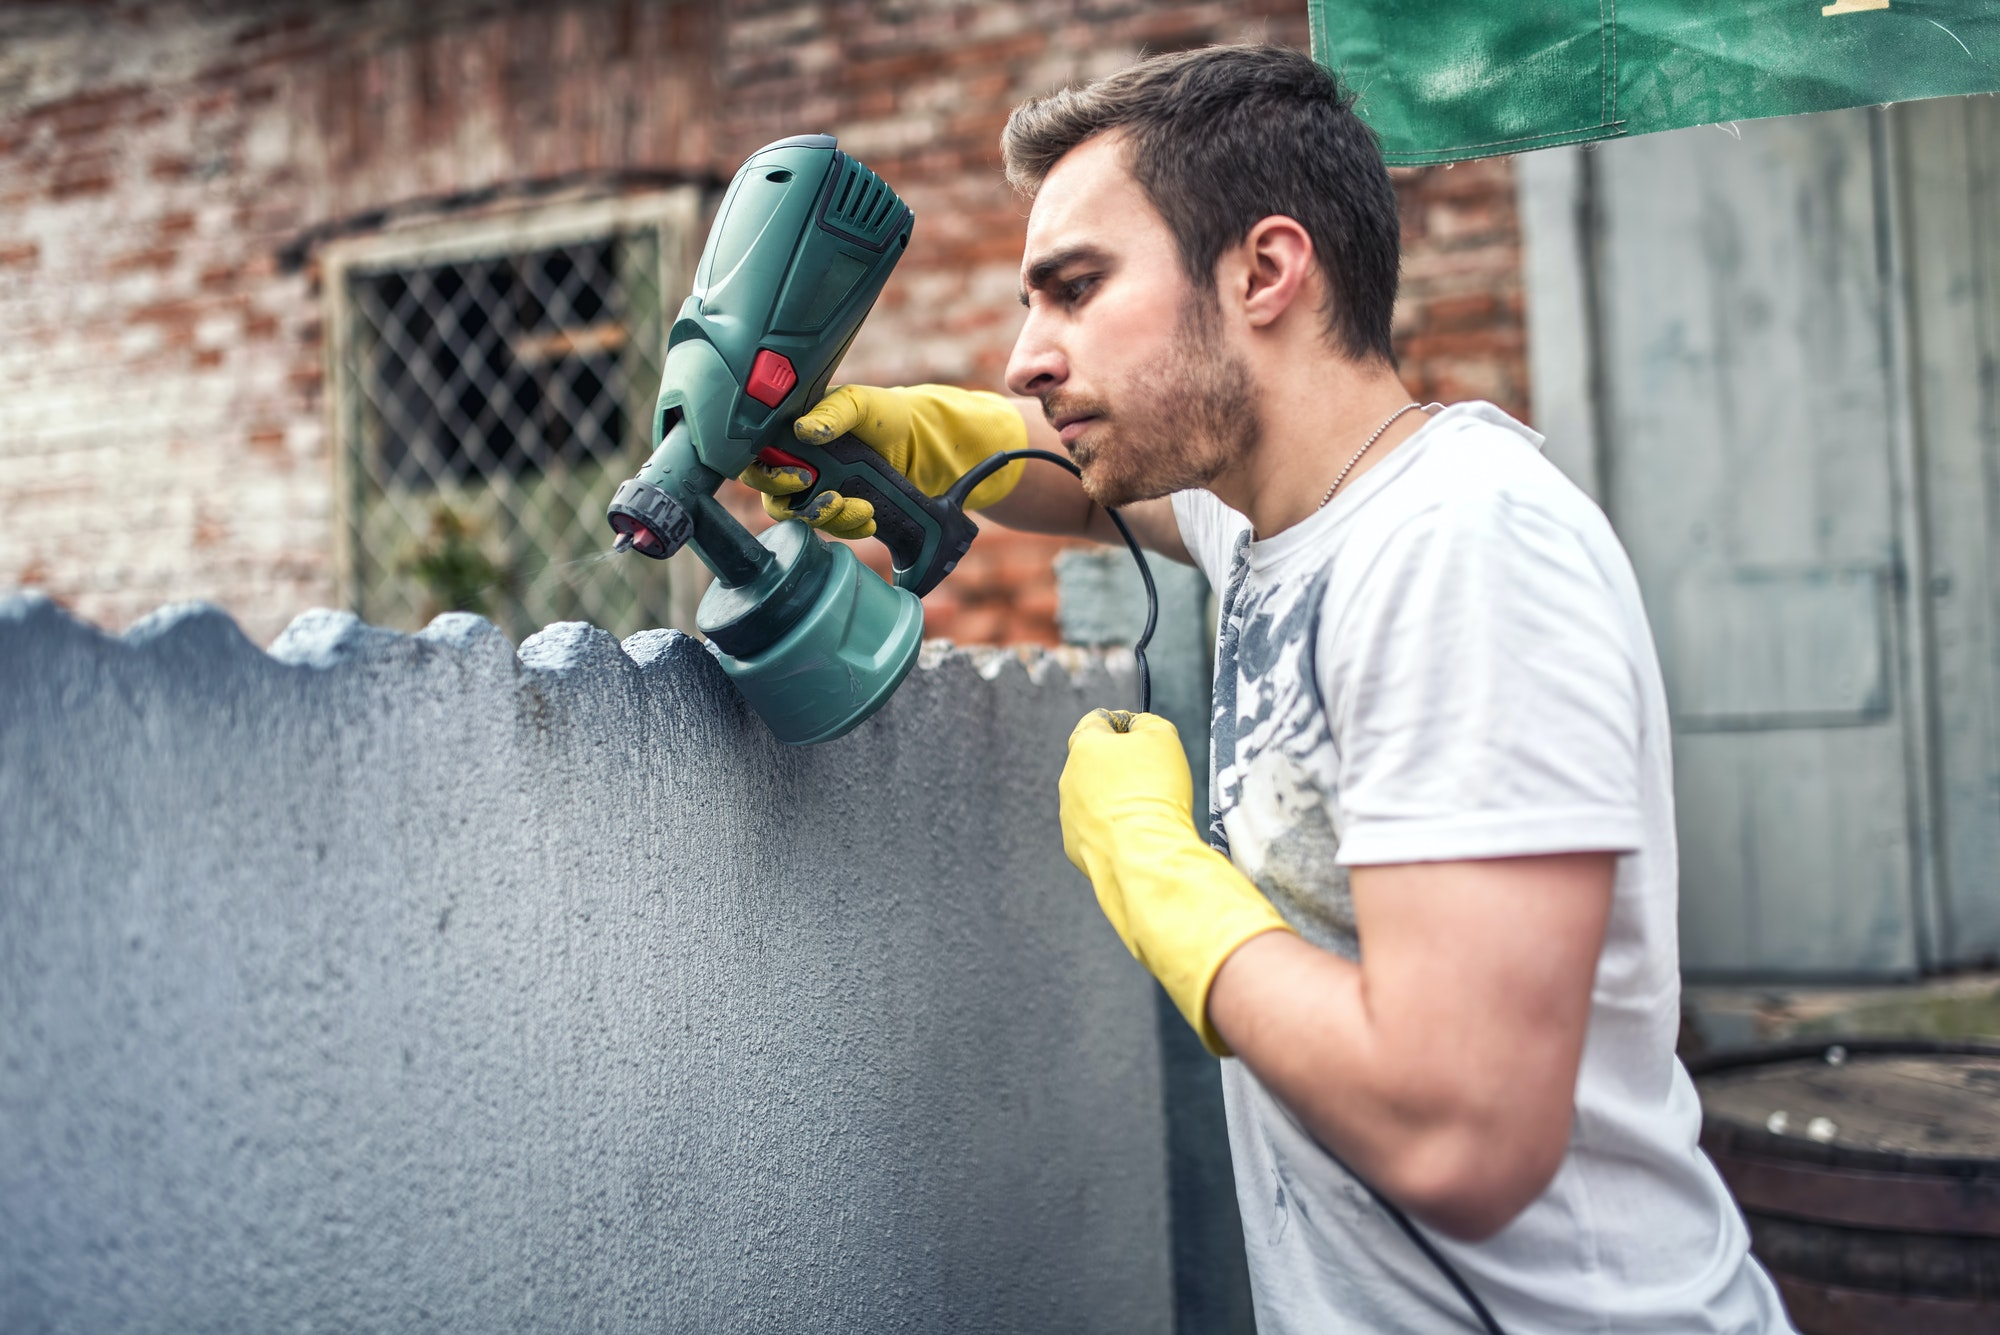 Professional construction worker painting walls at house renovation